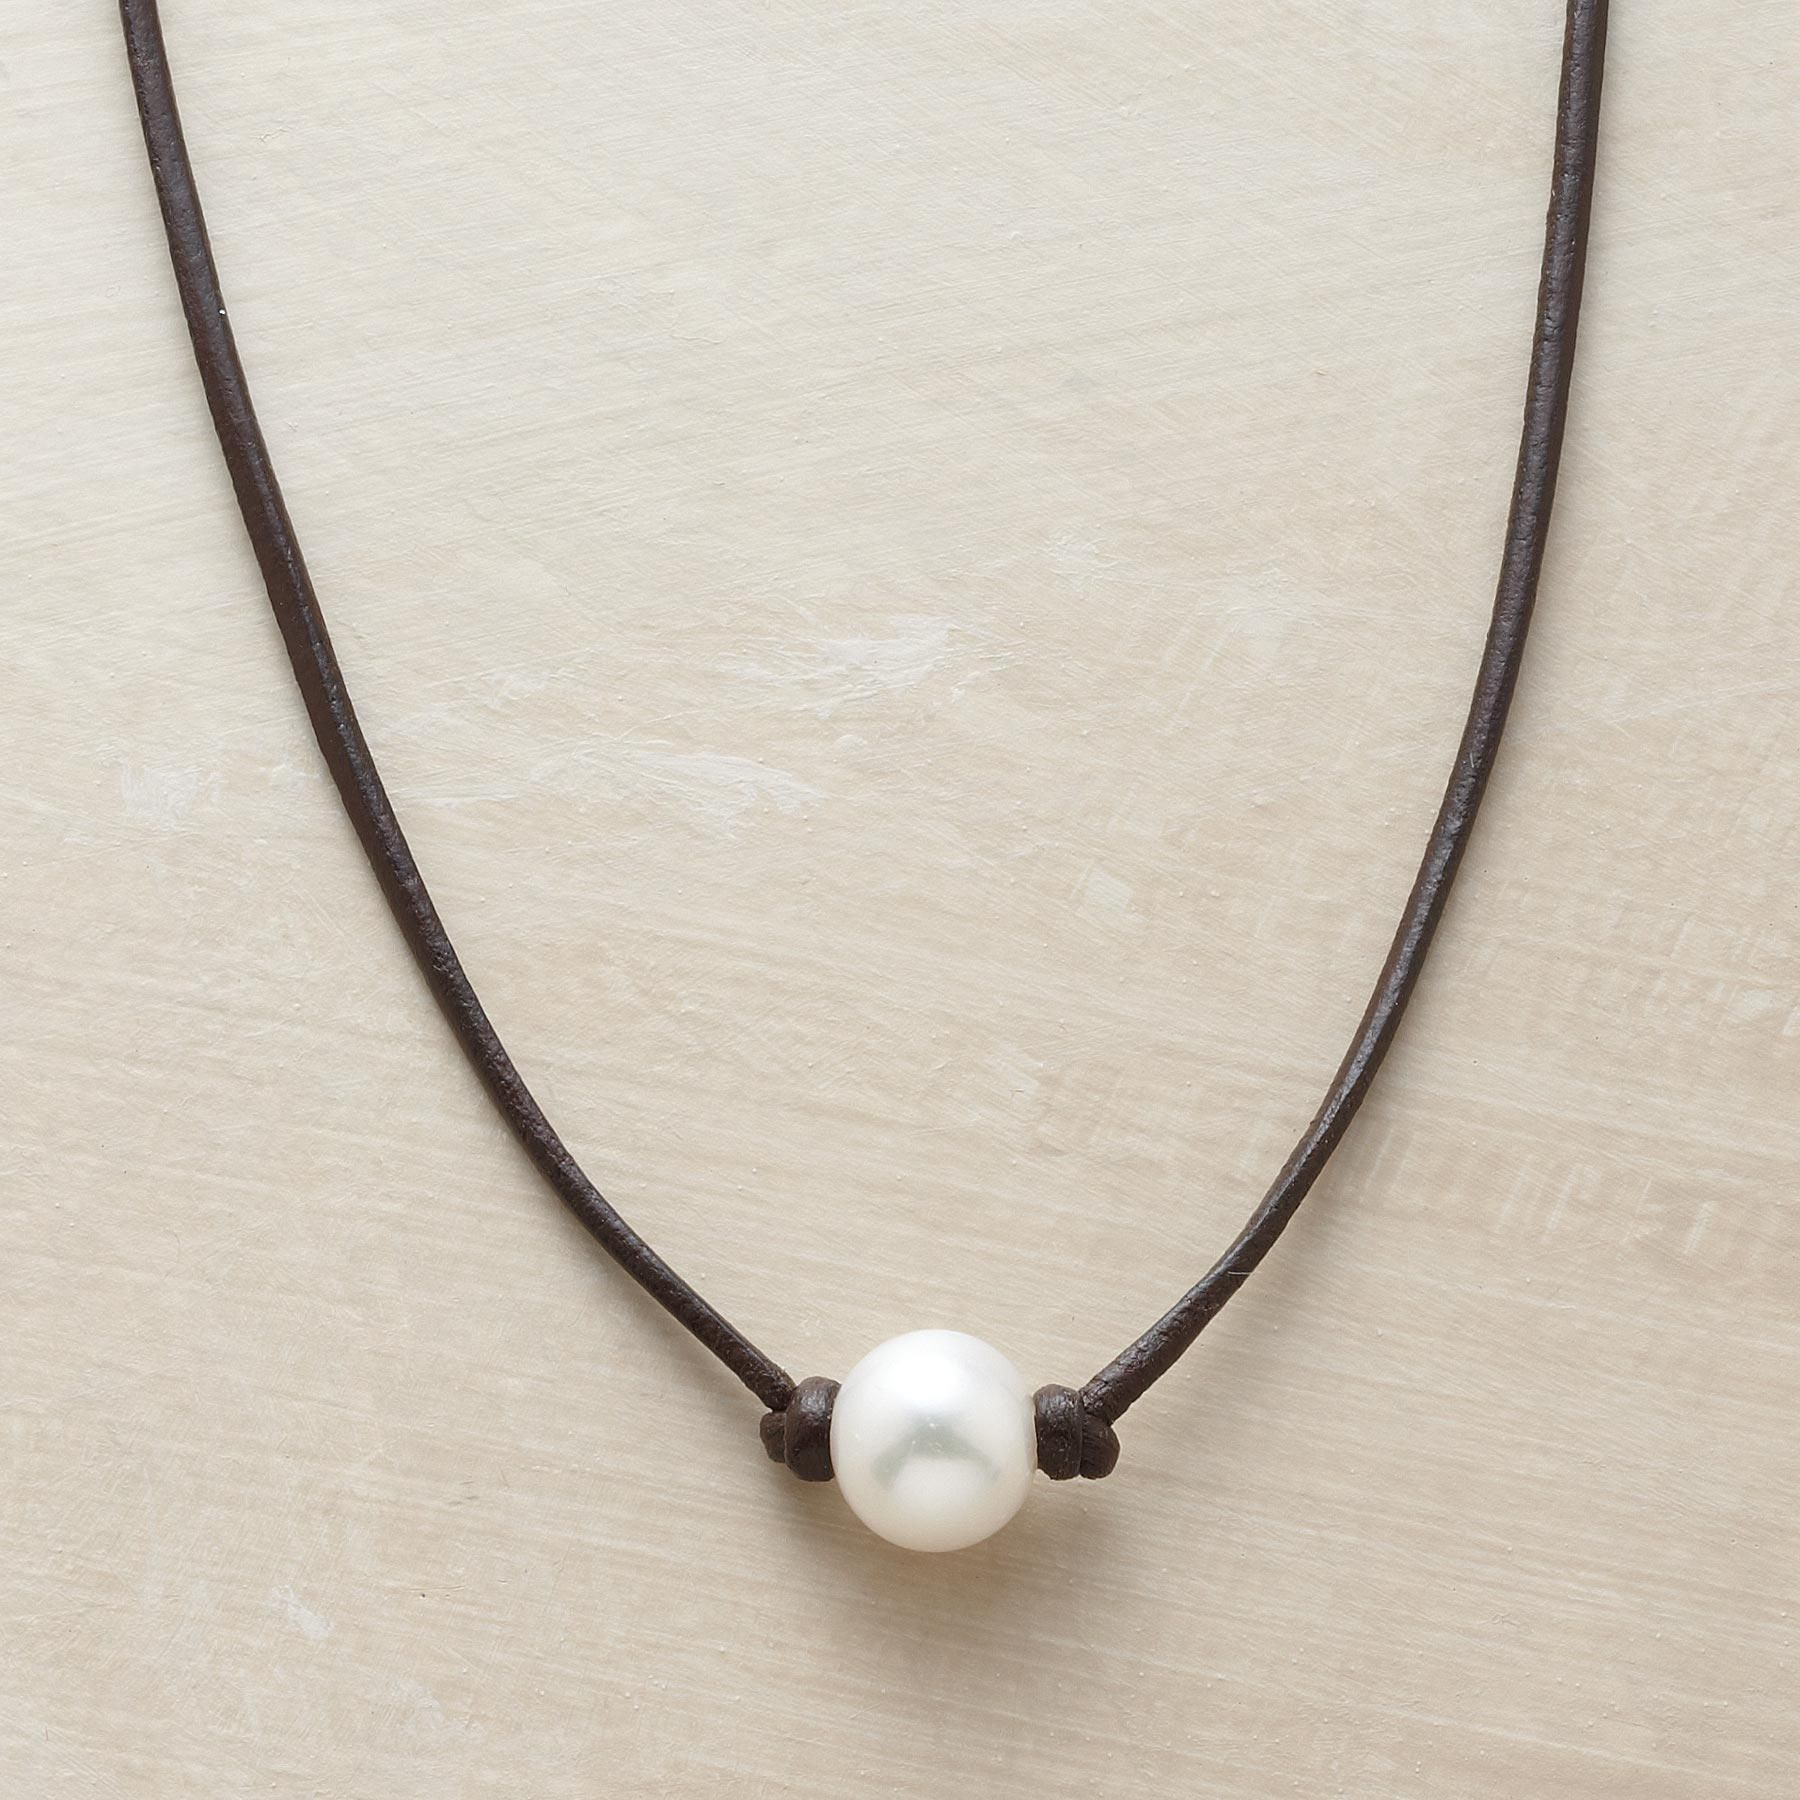 Enchanted Pearl Necklace  Simply Knotted On A Leather Strand, A Cultured  Pearl's Inborn